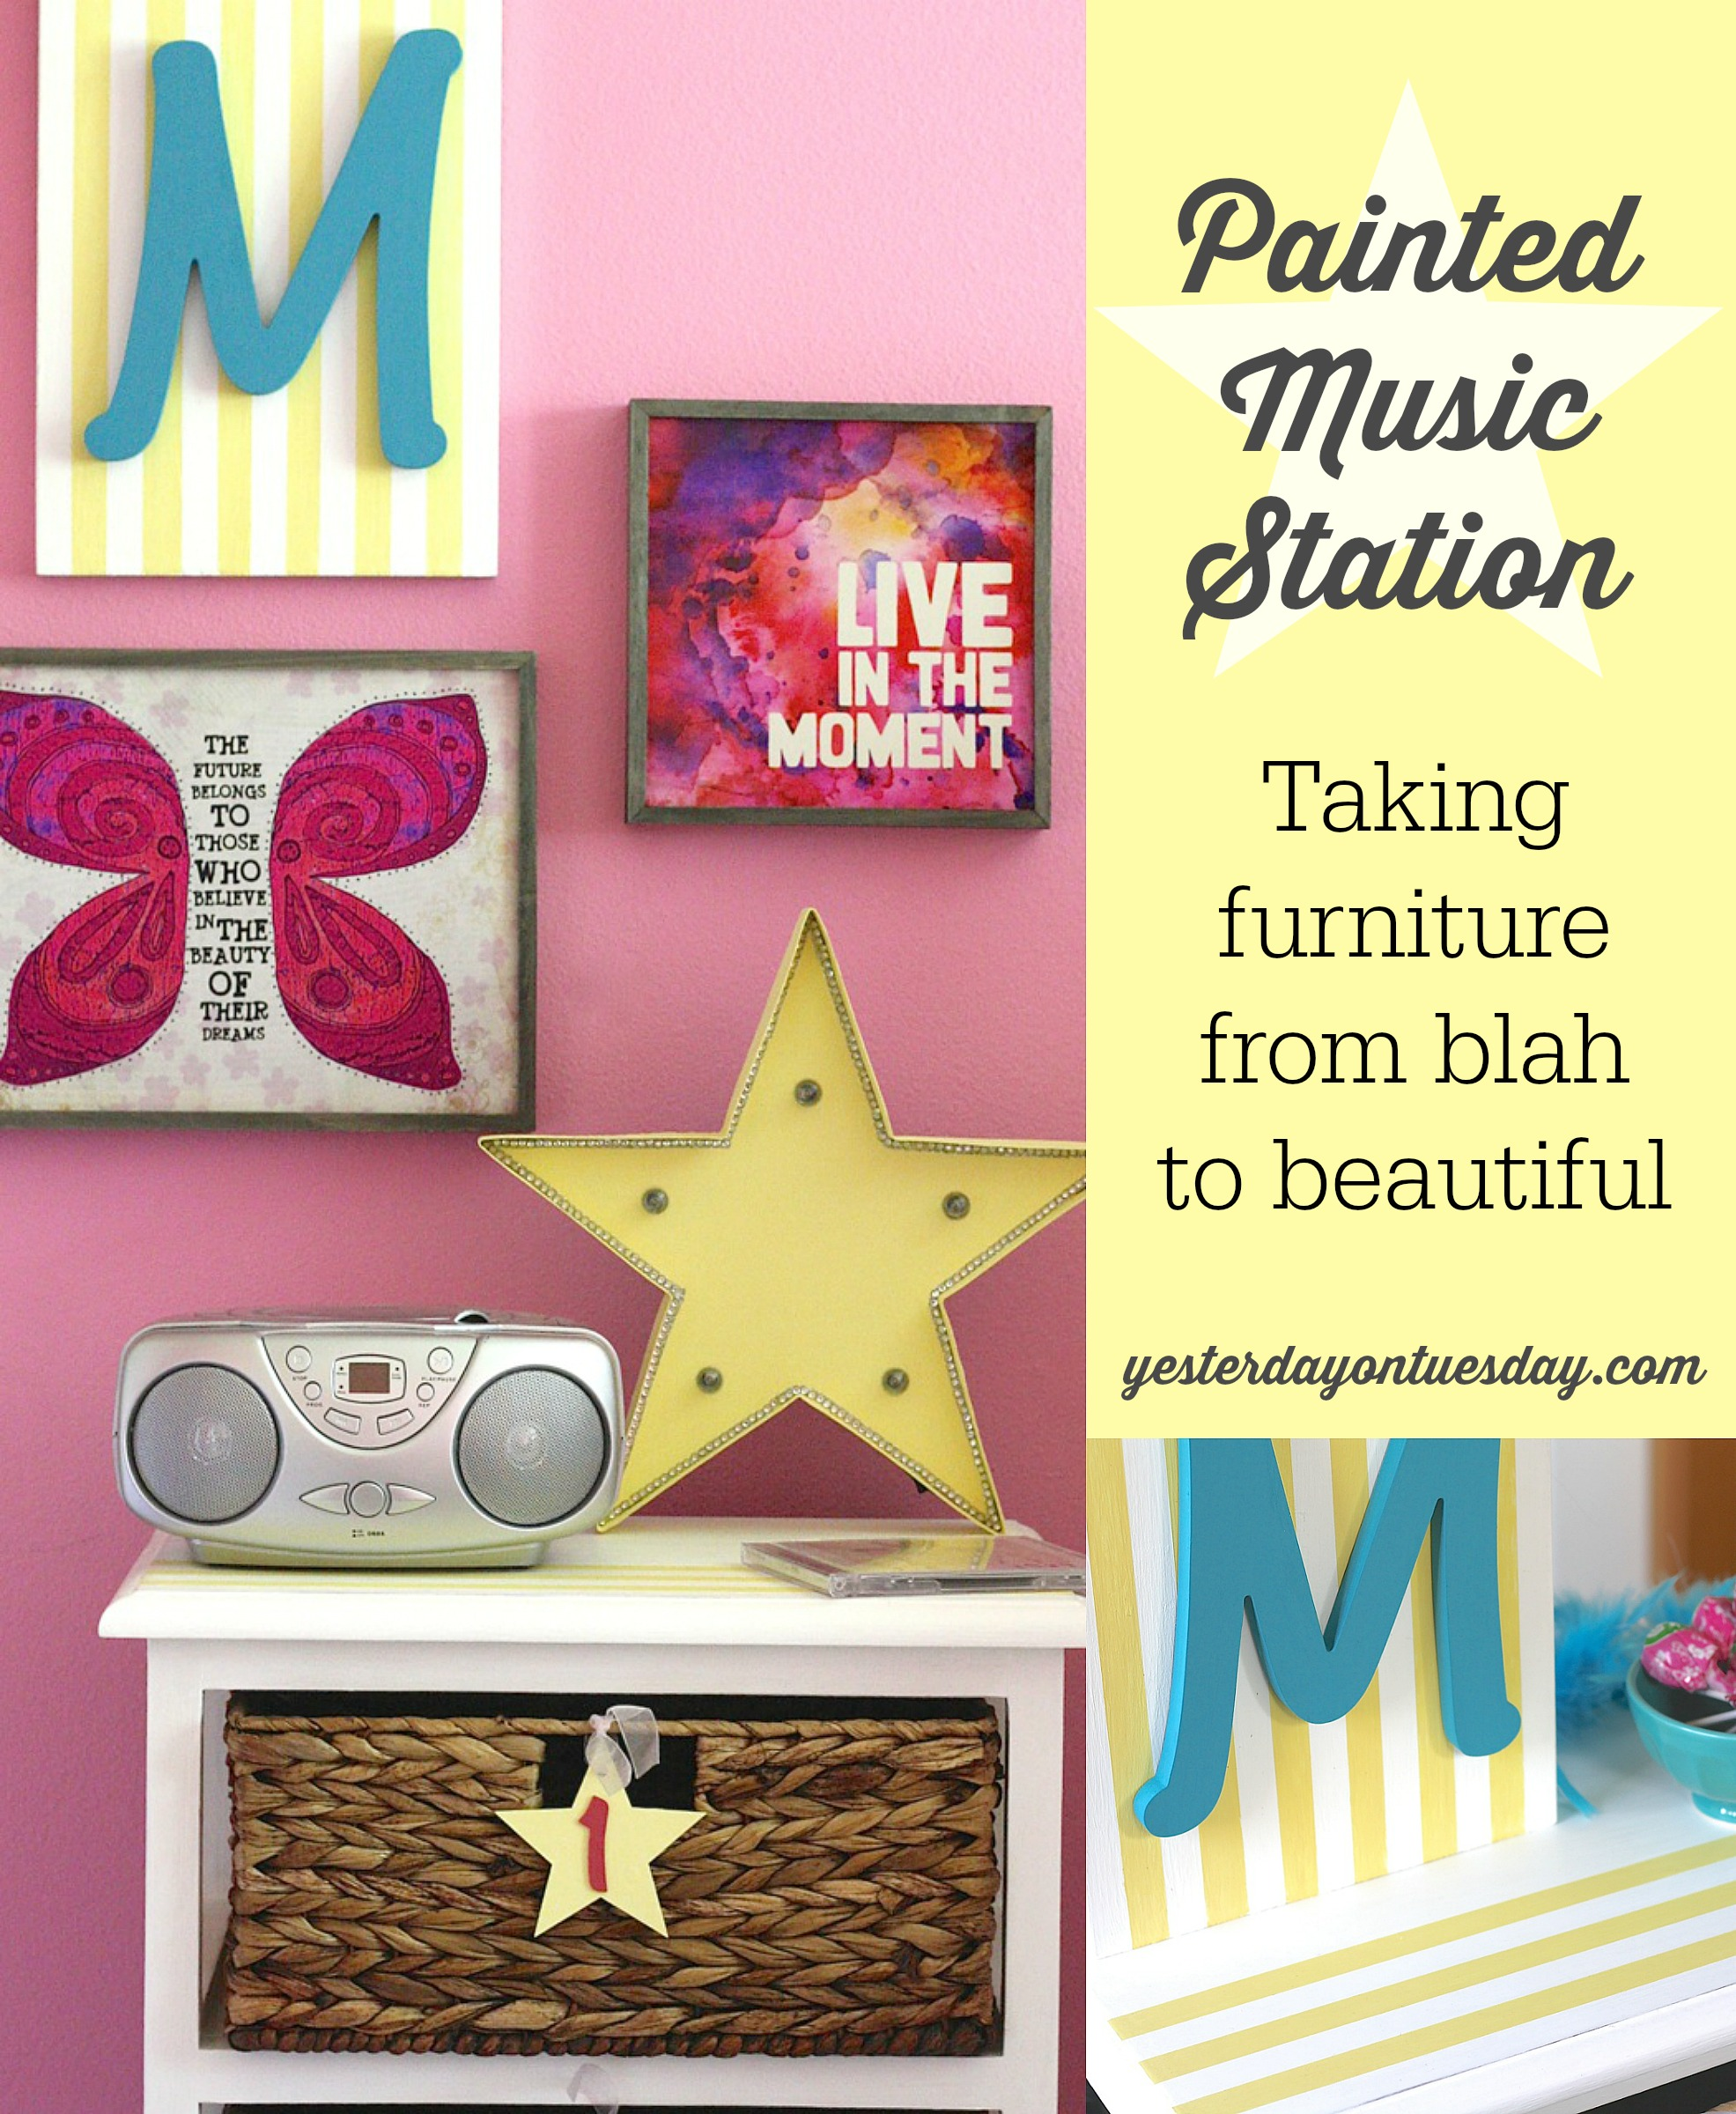 Painted Music Station